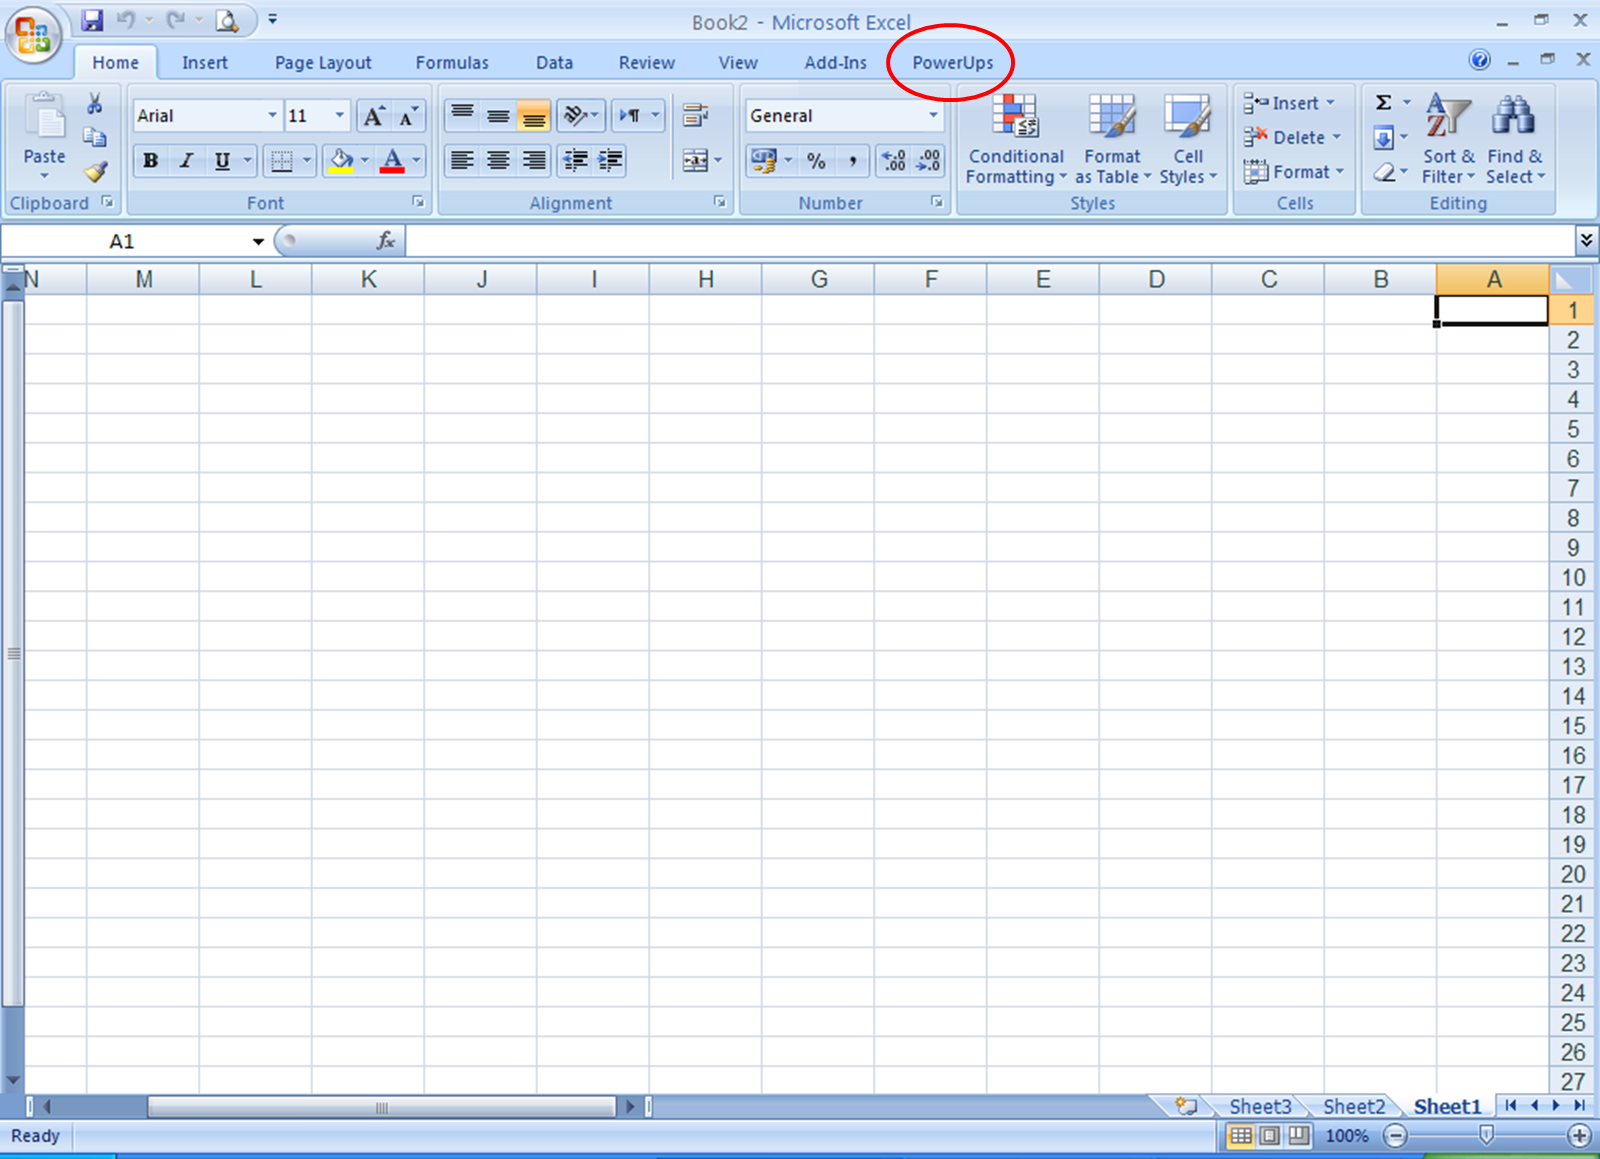 Validating data in Excel